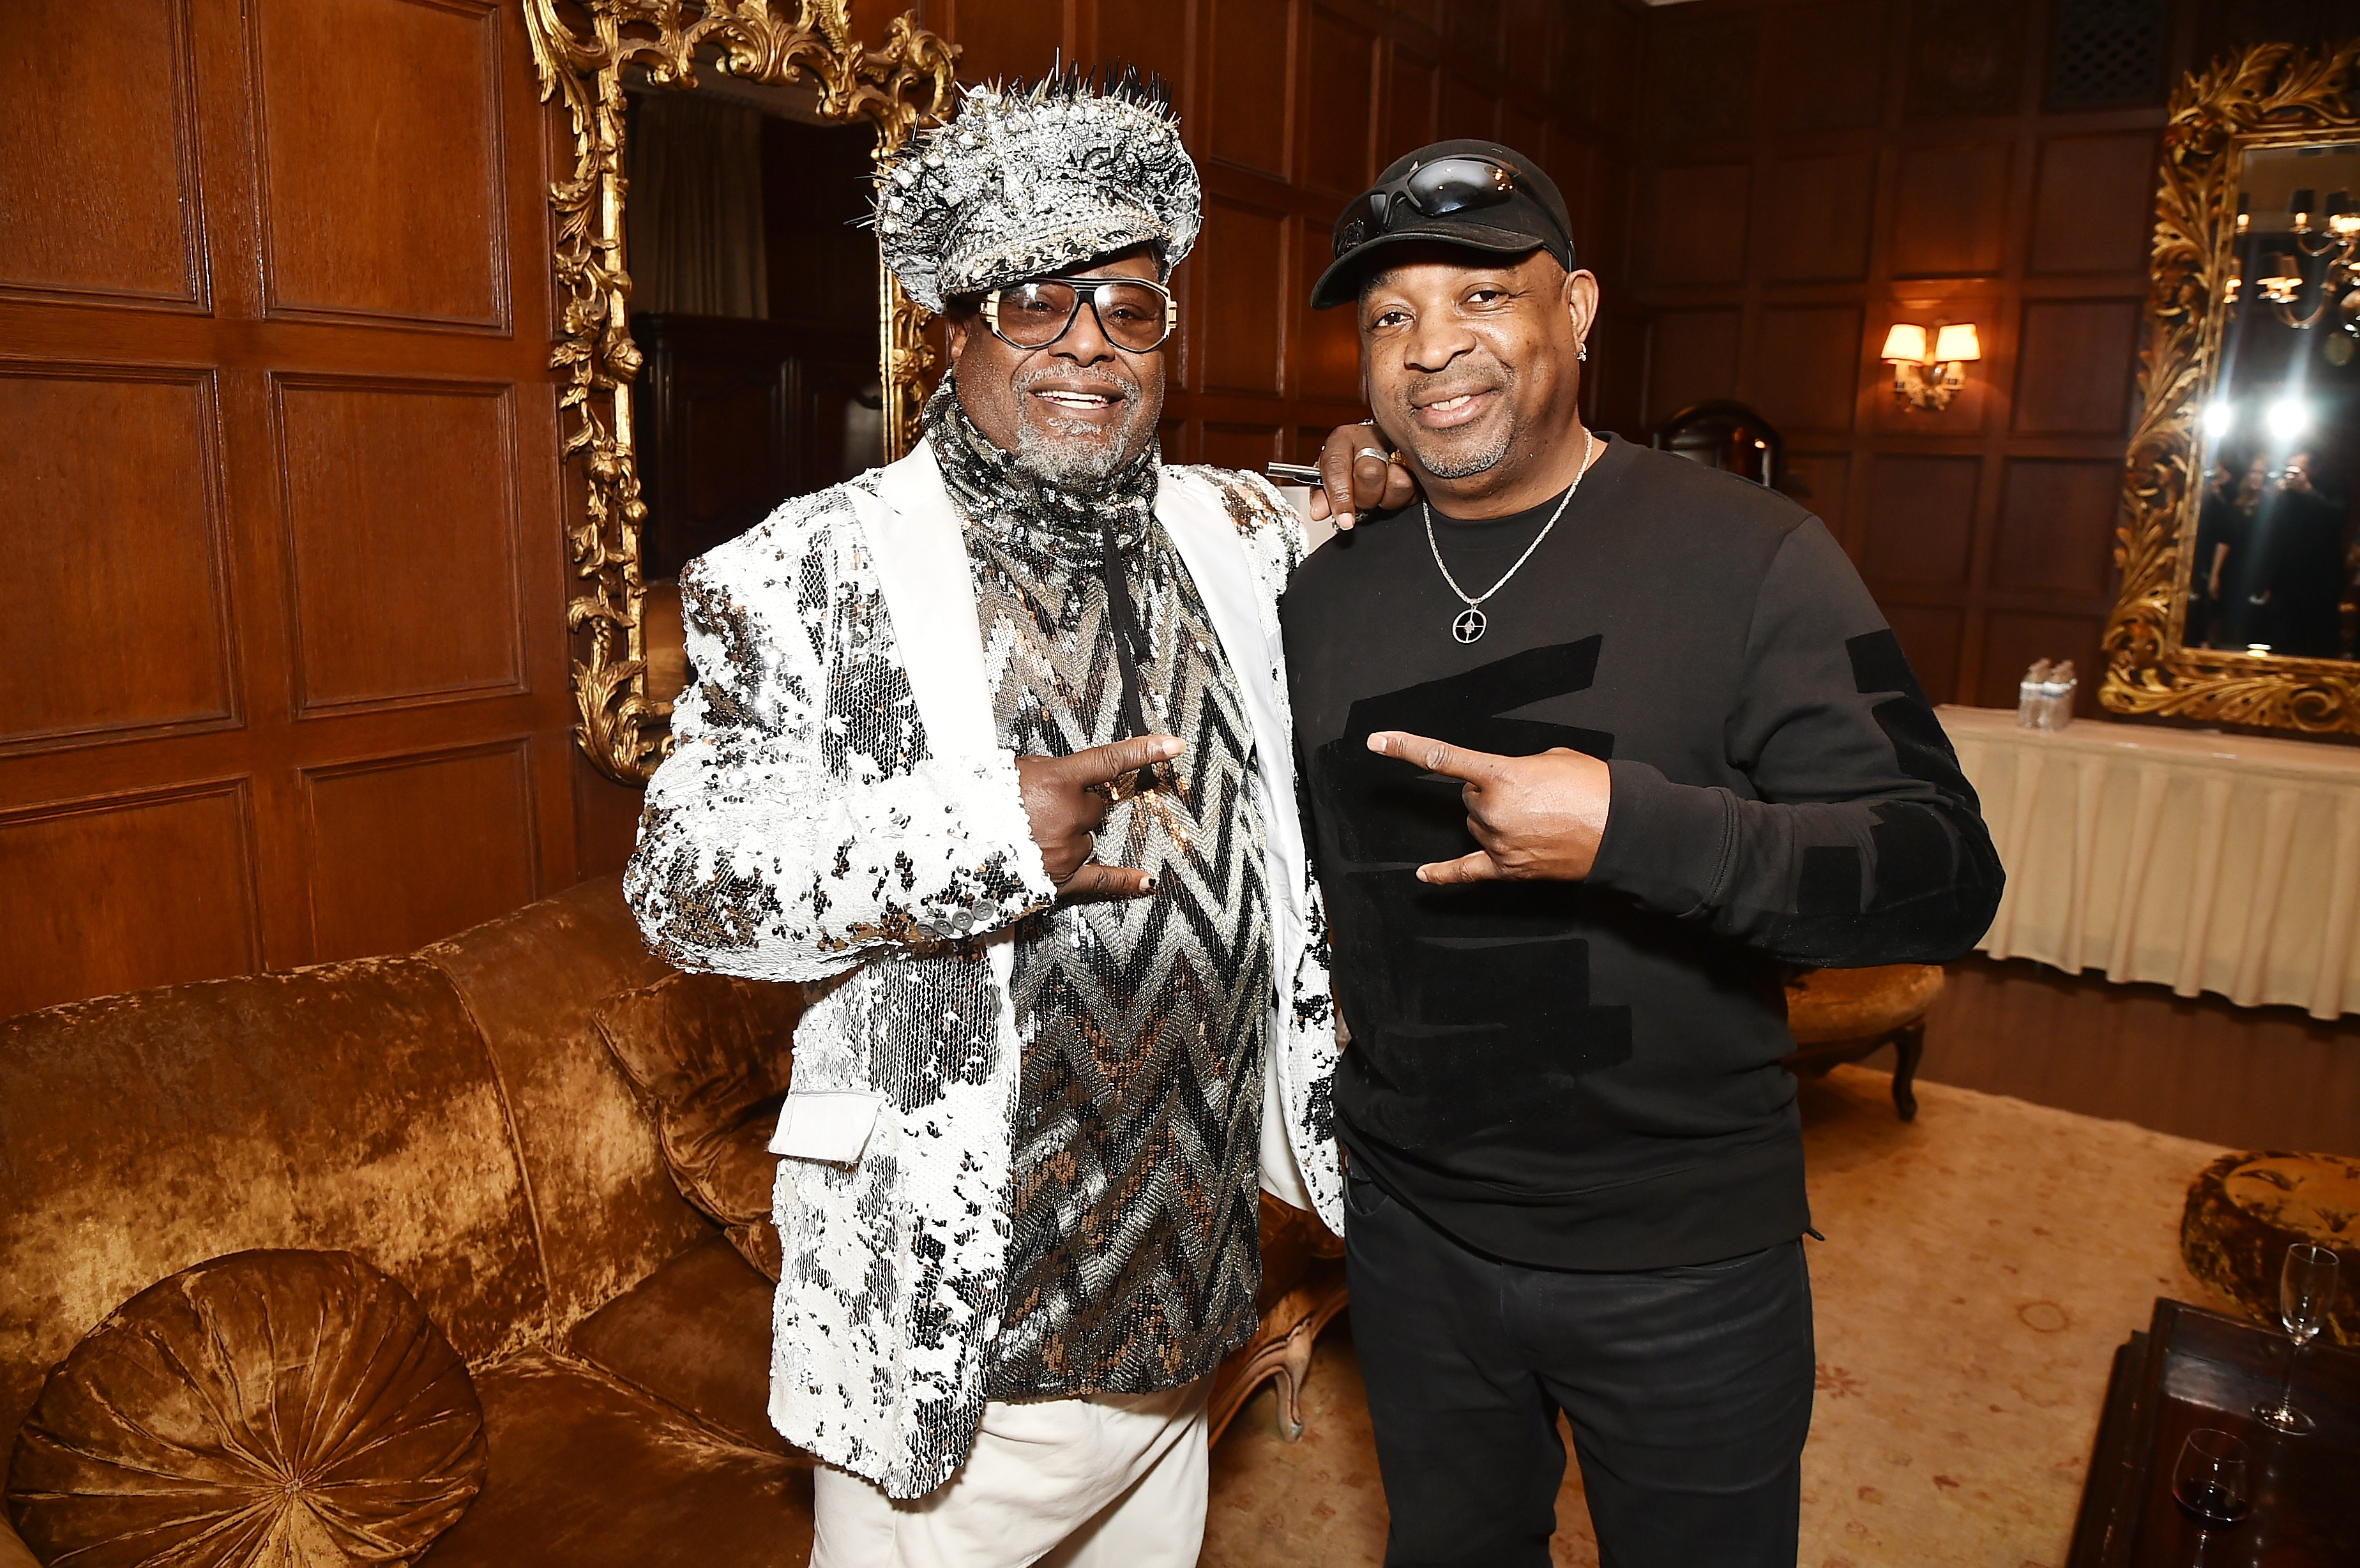 NEW YORK, NY - APRIL 13: Singer/Songwriter George Clinton (L) and Rapper Chuck D attends the 2017 SESAC Pop Awards on April 13, 2017 in New York City. (Photo by Theo Wargo/Getty Images for SESAC)